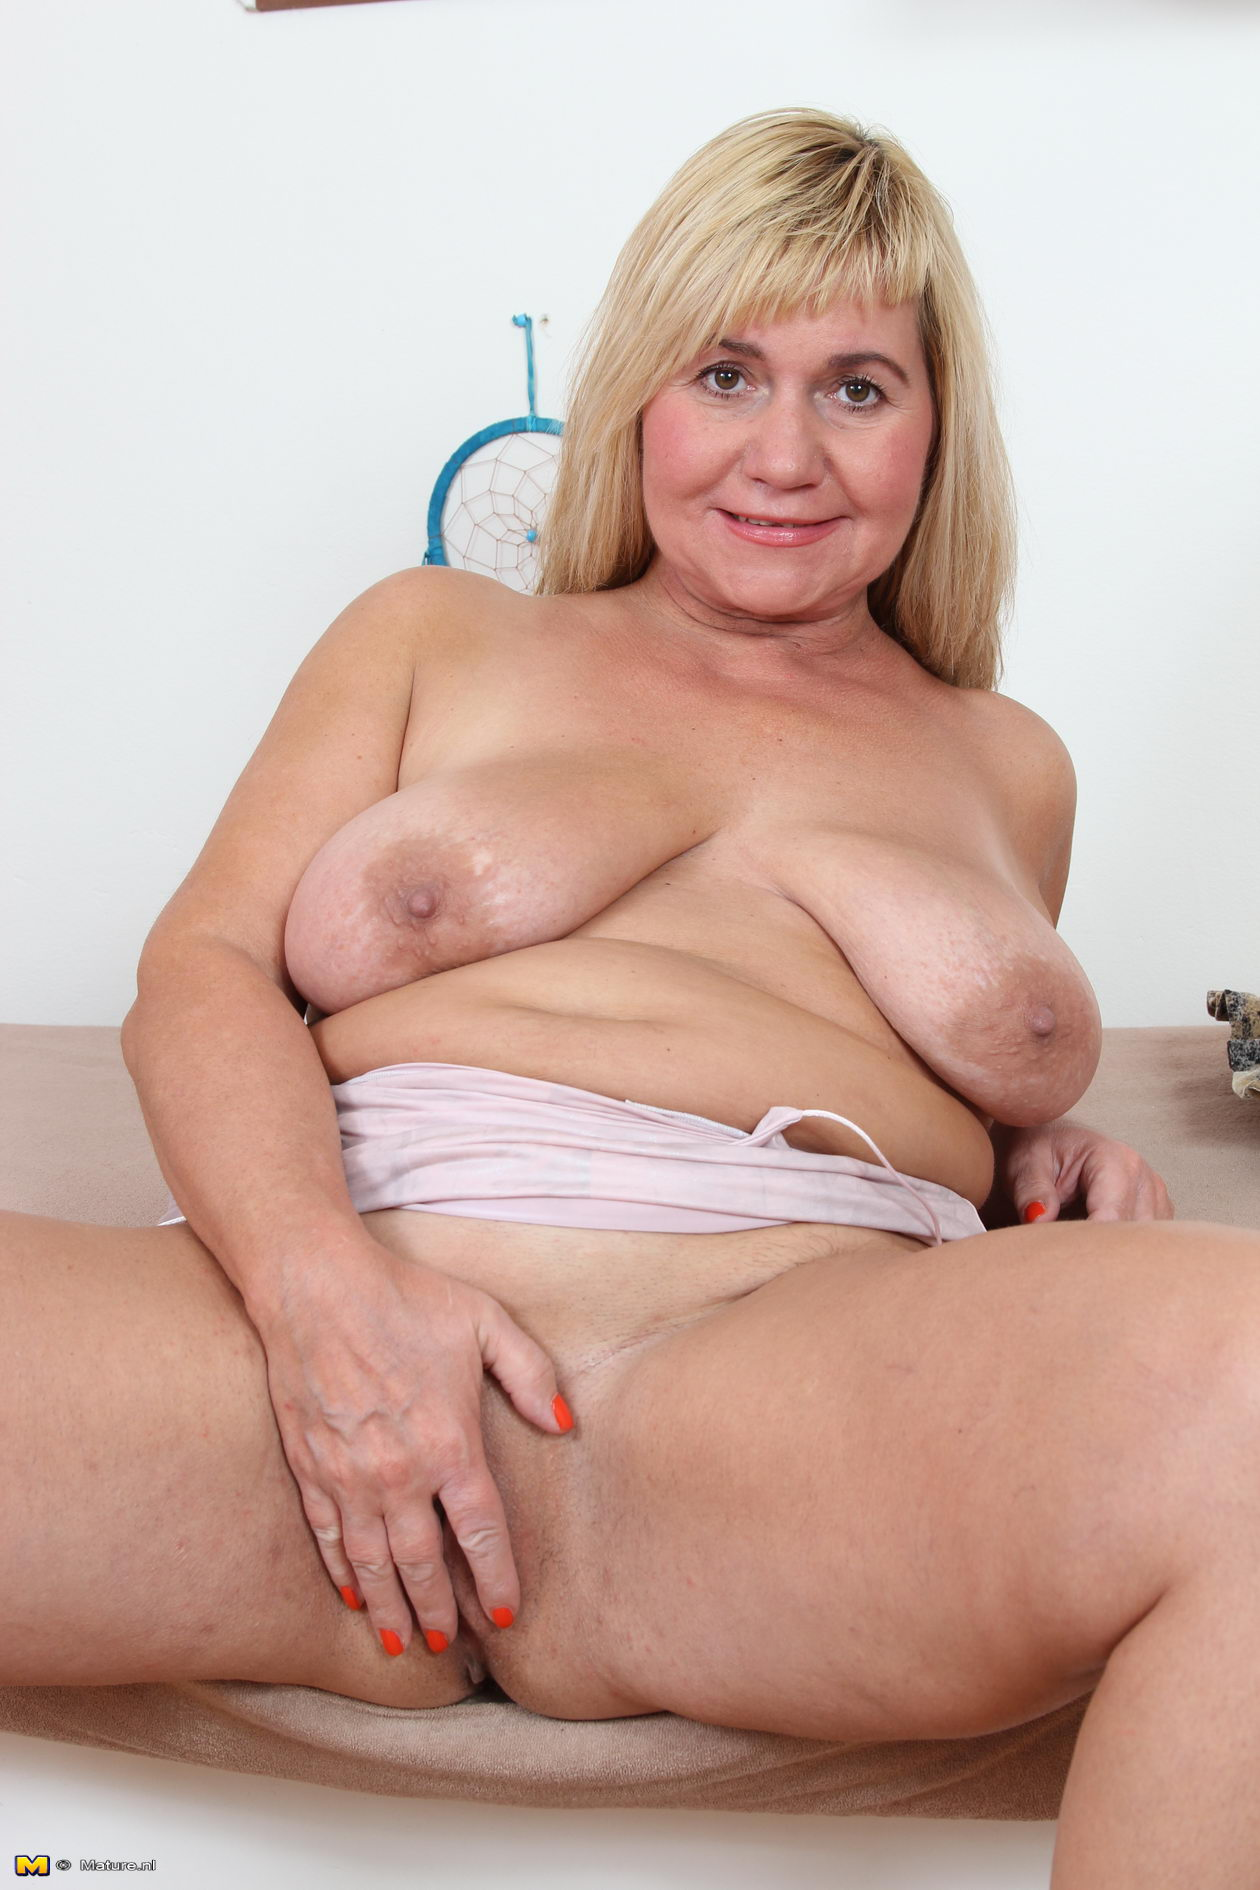 New to anal porn